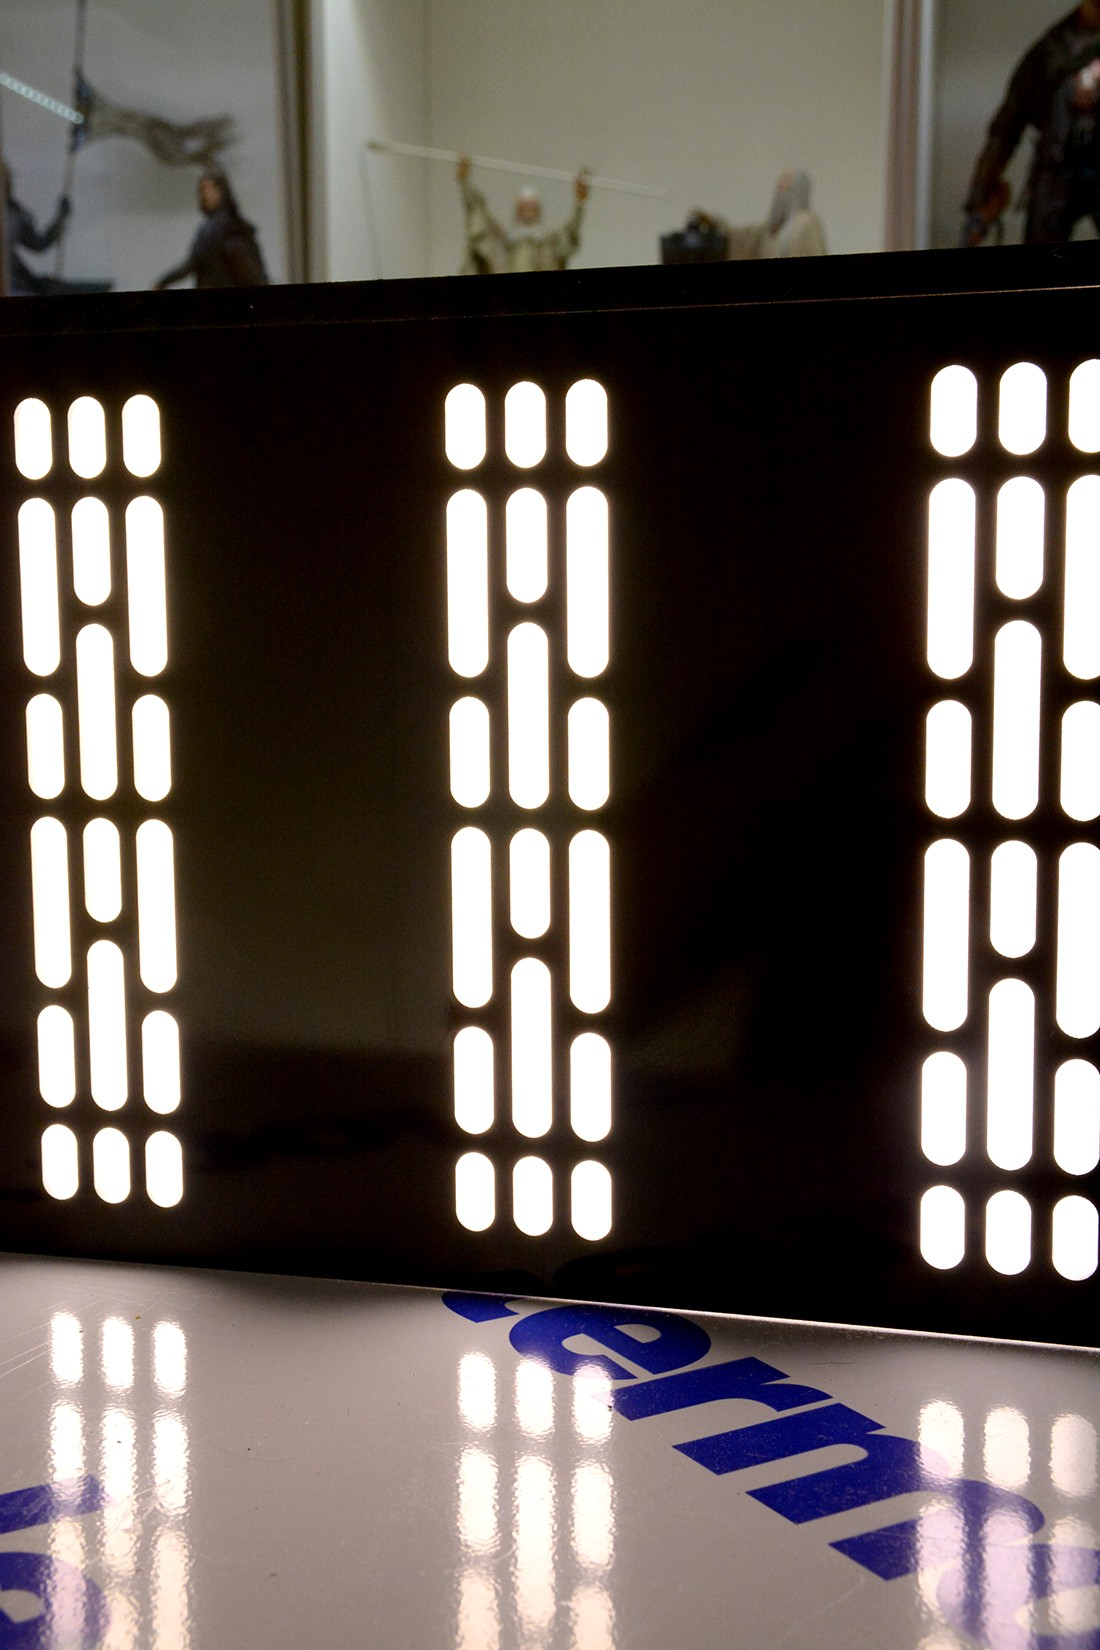 Star Wars Acrylic Display Case  CnBAXo